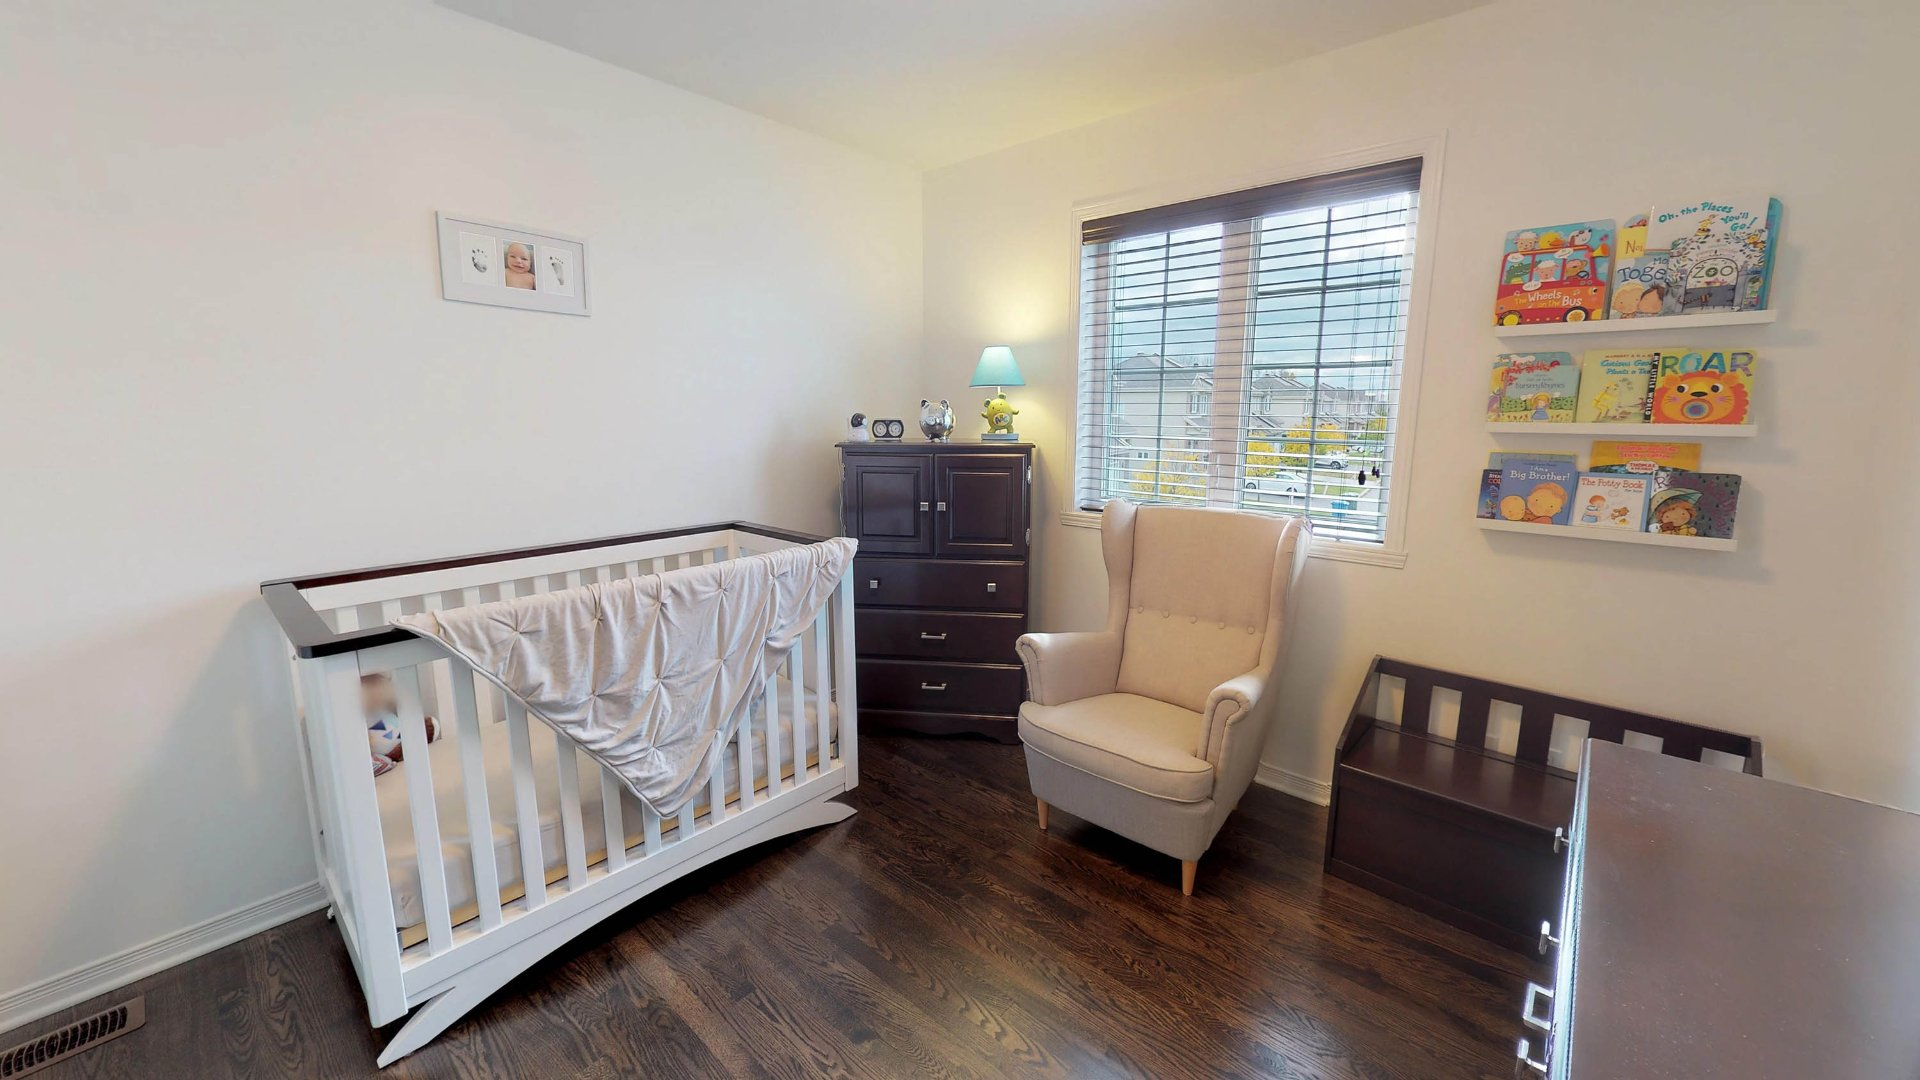 Two or more storey for sale l-ile-bizard-sainte-genevieve-montreal ...